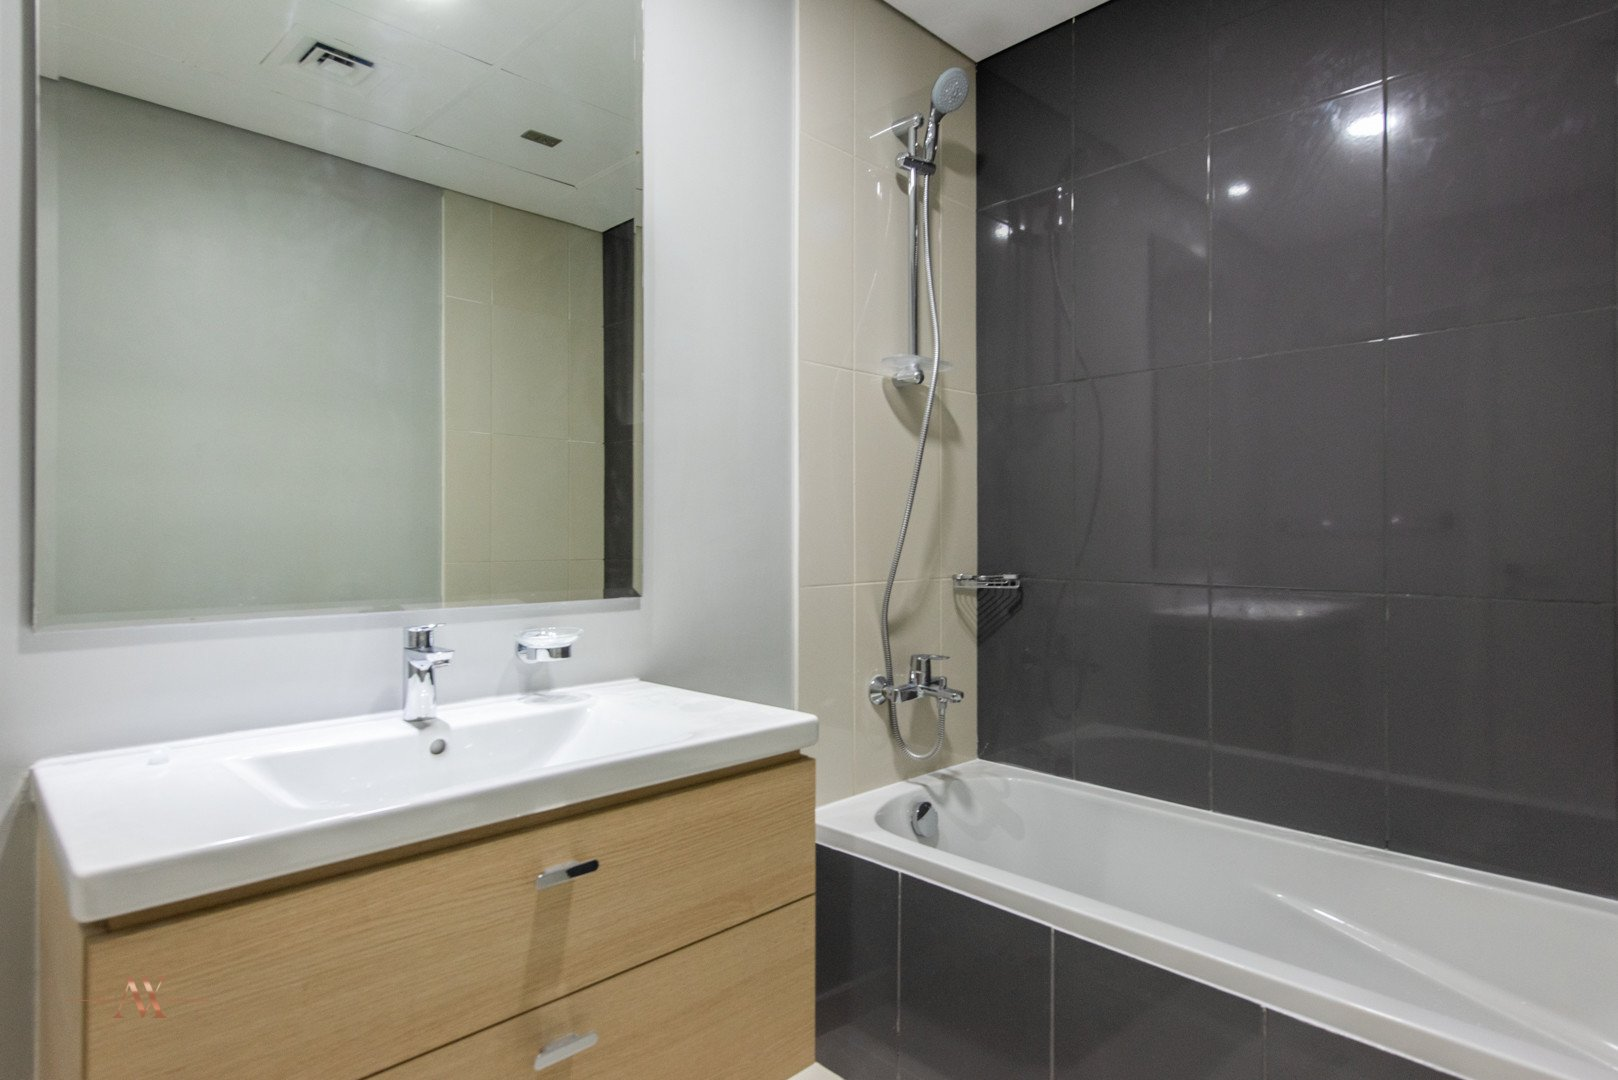 Townhouse for sale in Dubai, UAE, 3 bedrooms, 362.9 m2, No. 23666 – photo 3